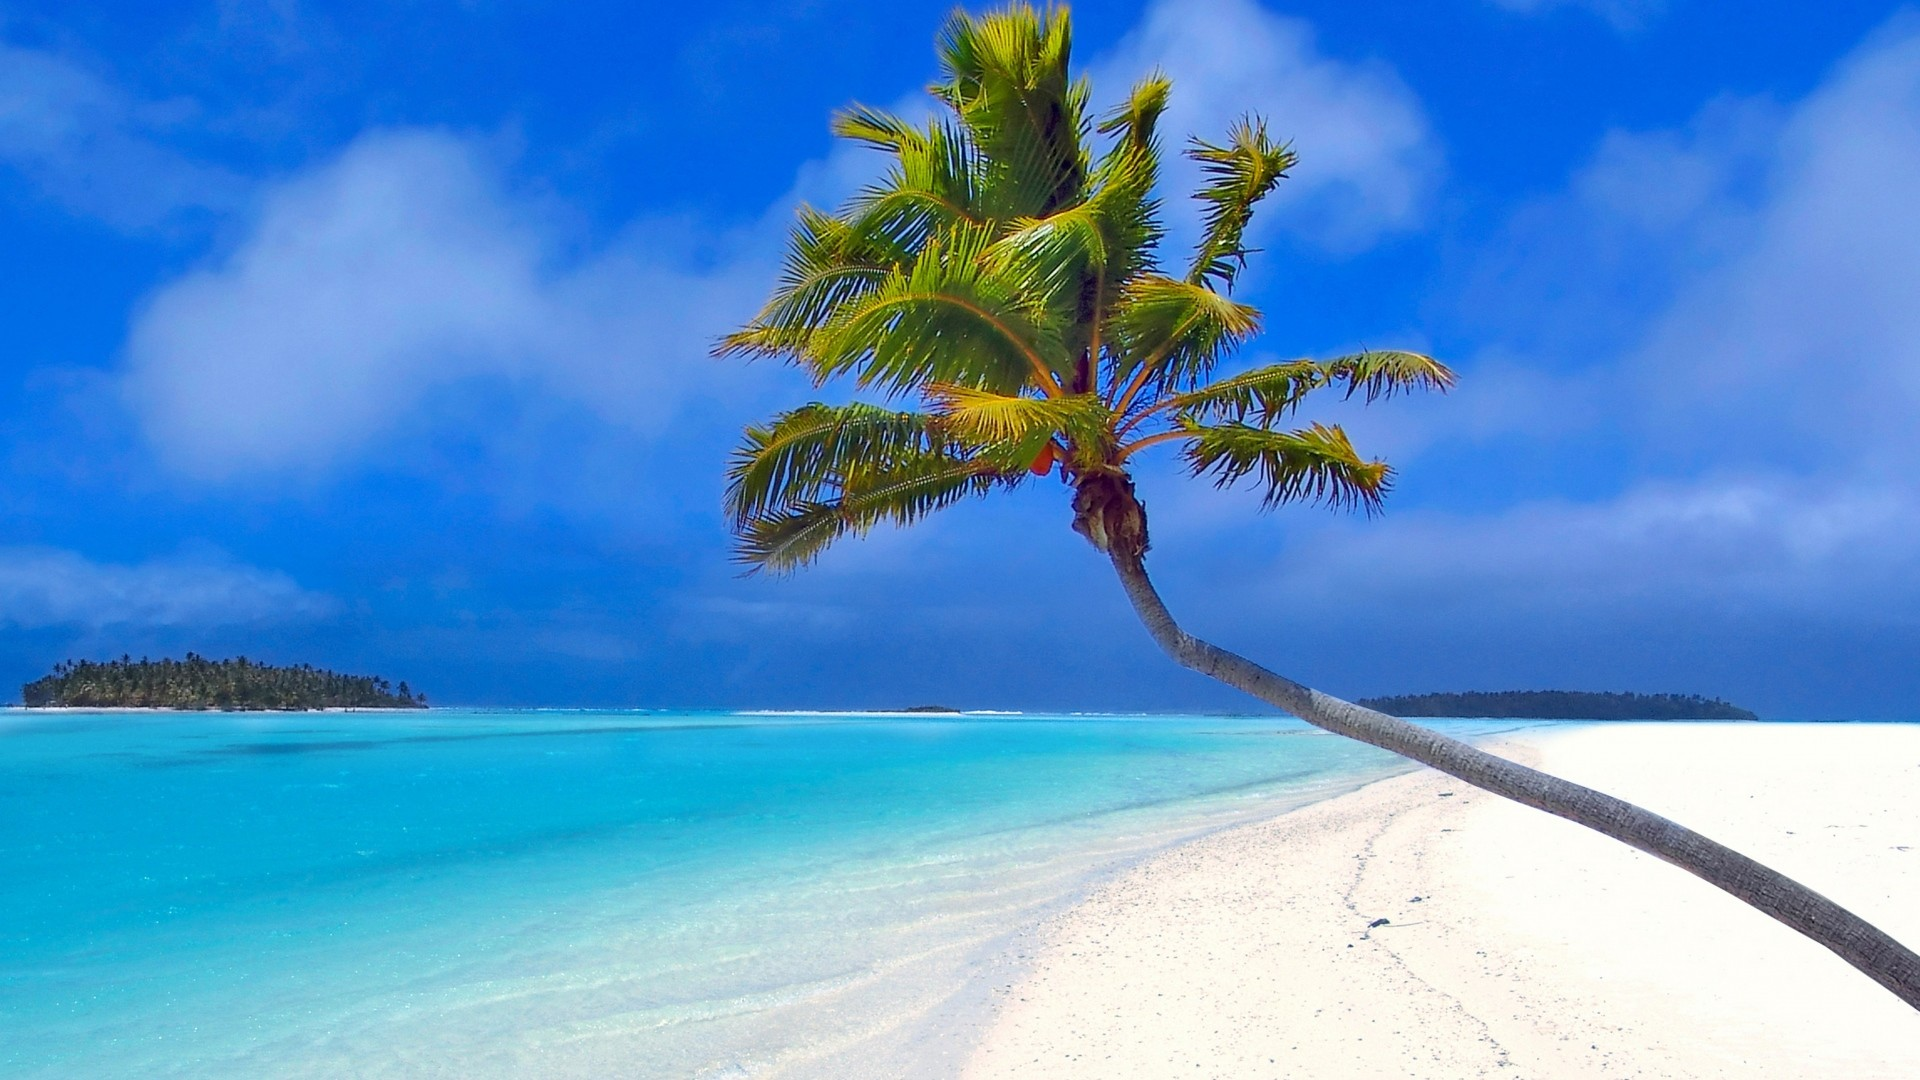 Preview wallpaper maldives, beach, palm trees, sand, sea 1920×1080